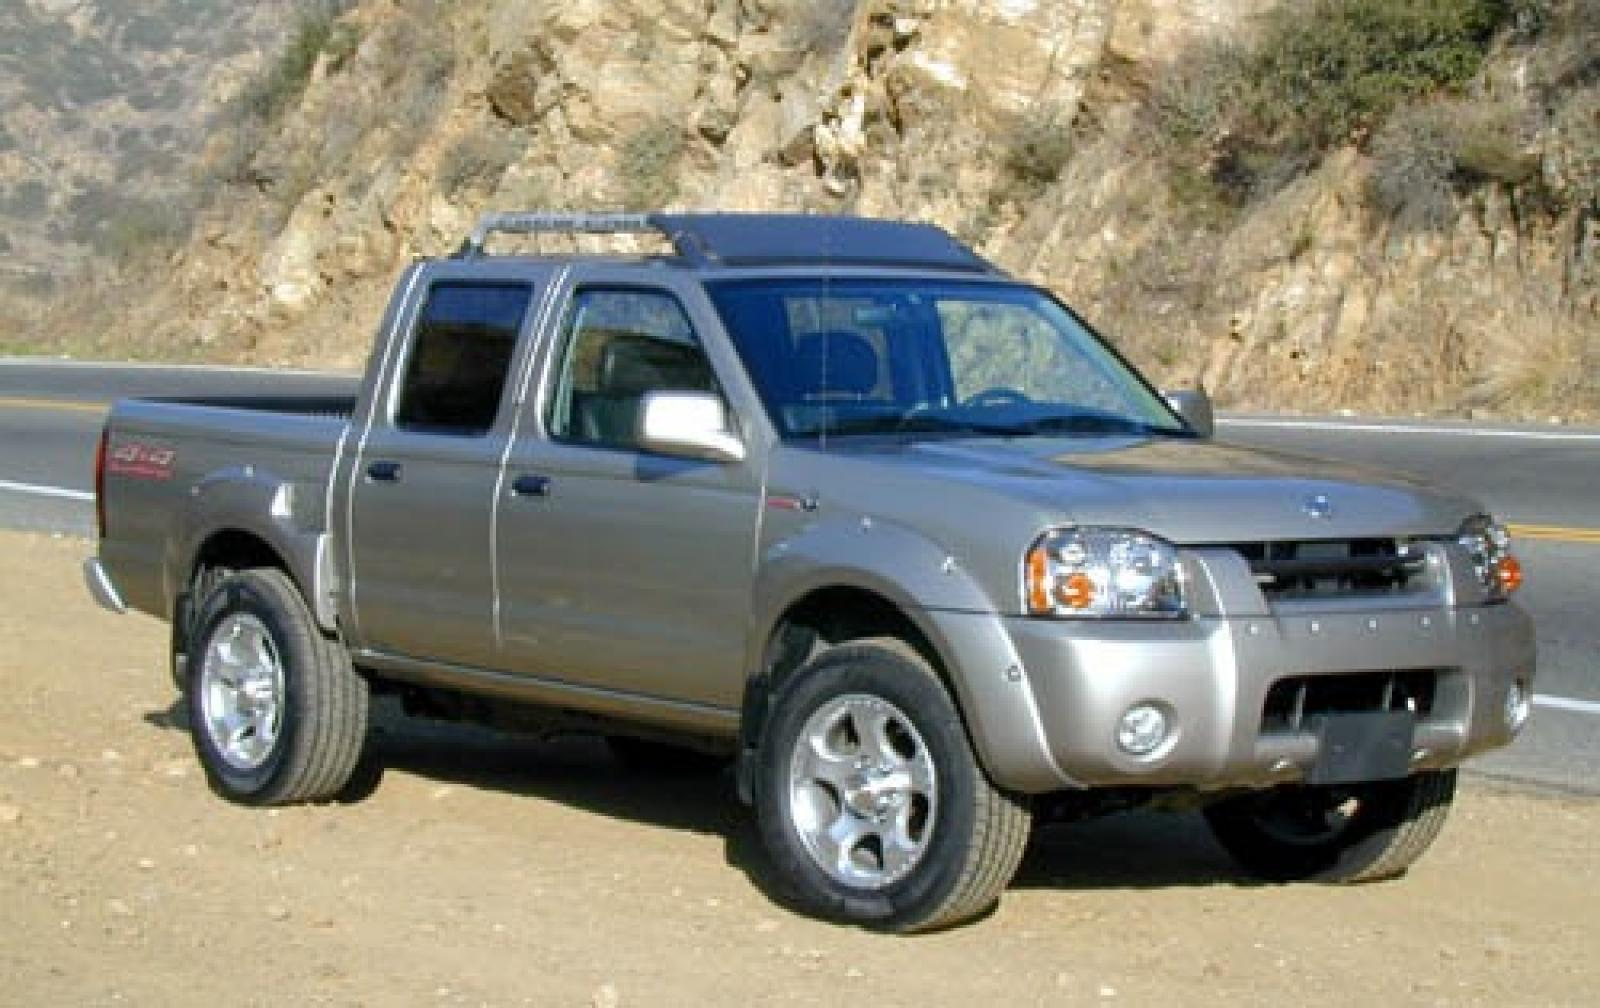 2004 nissan frontier information and photos zombiedrive 800 1024 1280 1600 origin 2004 nissan frontier vanachro Image collections